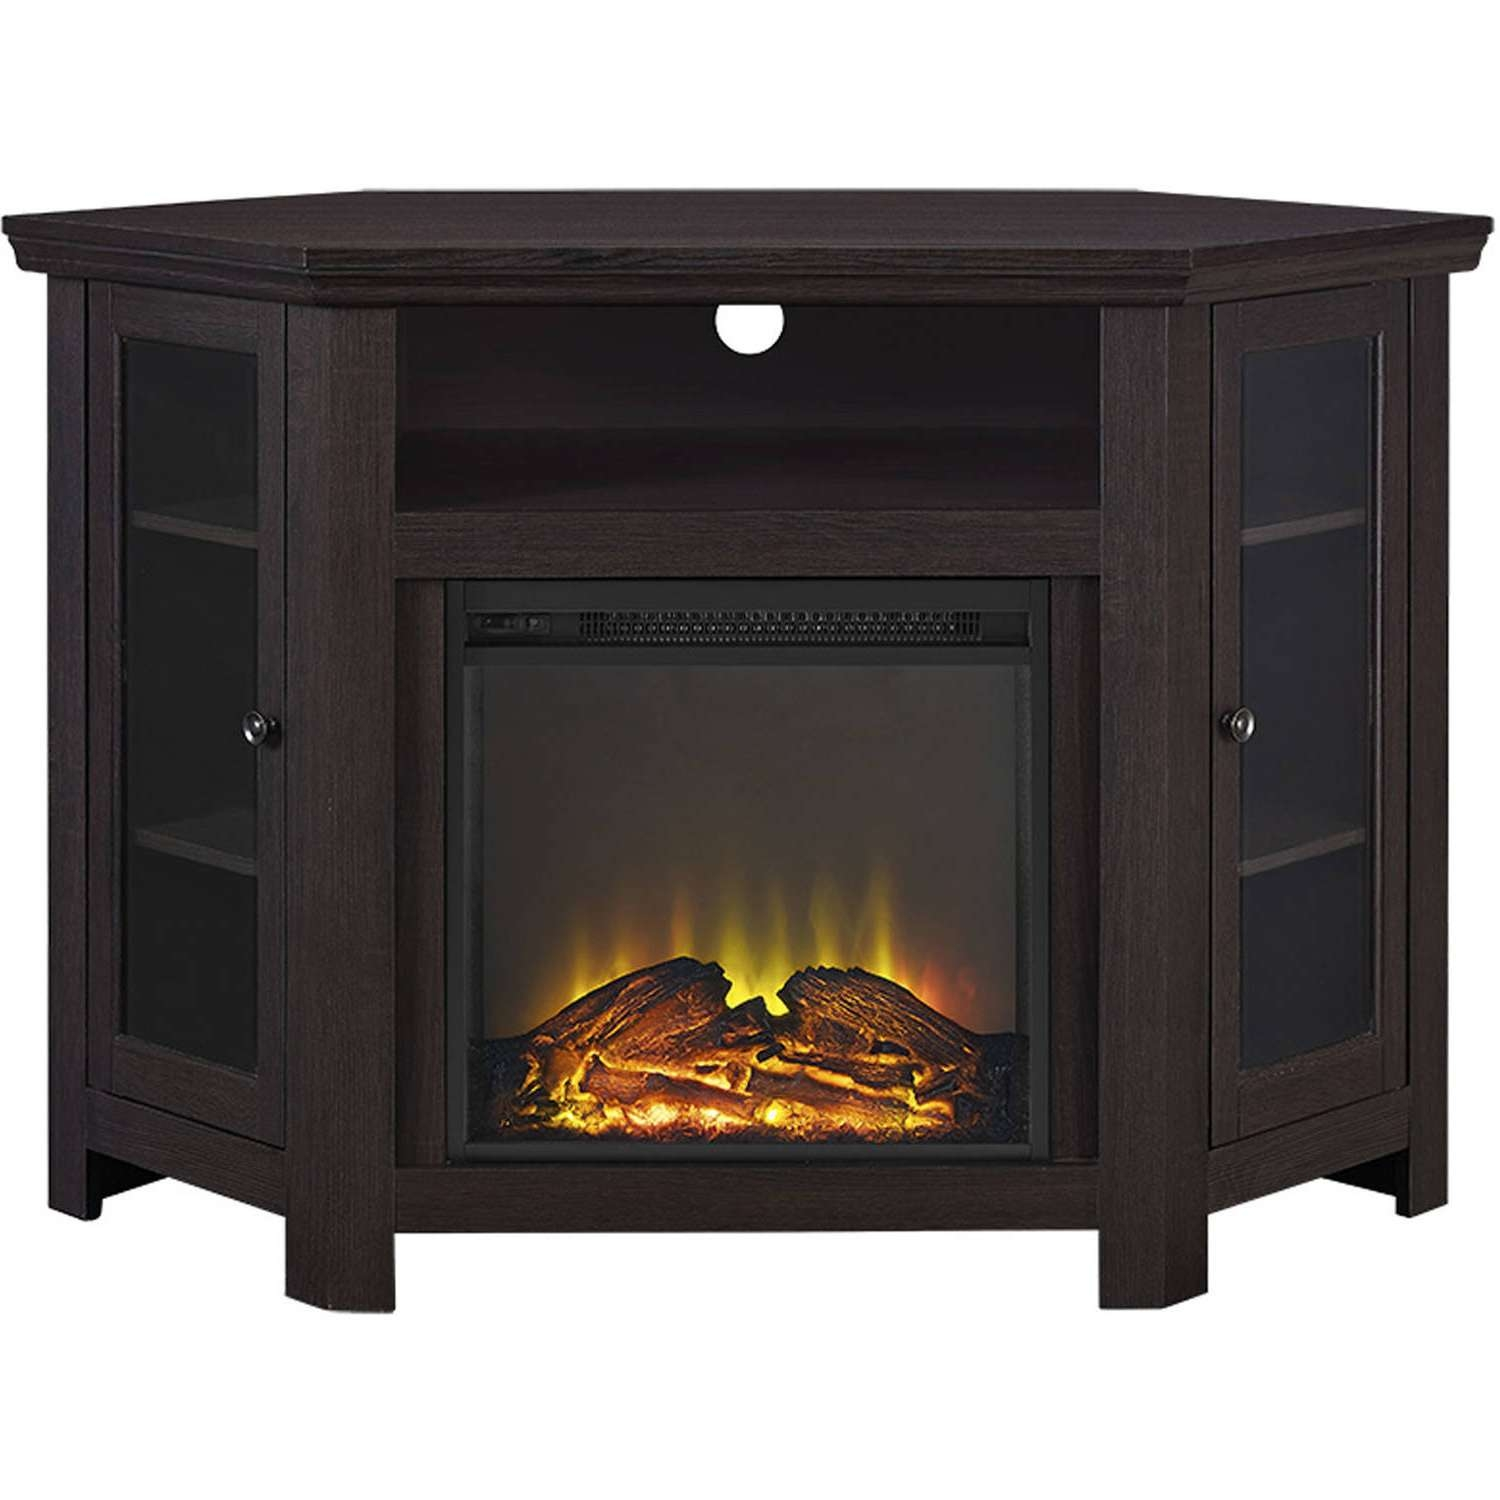 "Wood Corner Tv Fireplace Tv Stand For Tvs Up To 52"", Multiple Within 50 Inch Fireplace Tv Stands (View 15 of 15)"